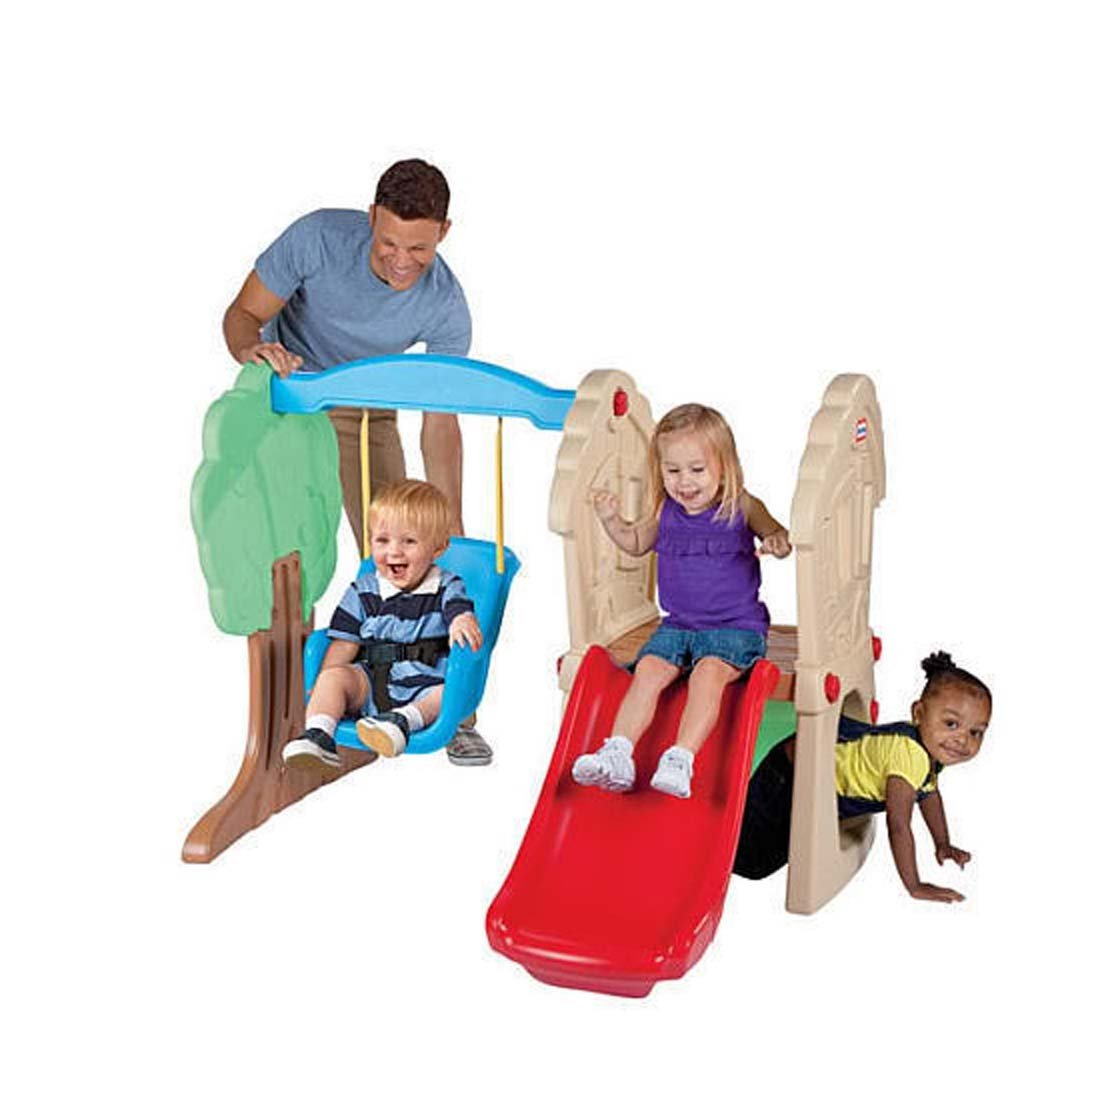 Hide and Seek Climber and Swing : 40.700in X 27.200in X 19.600 in